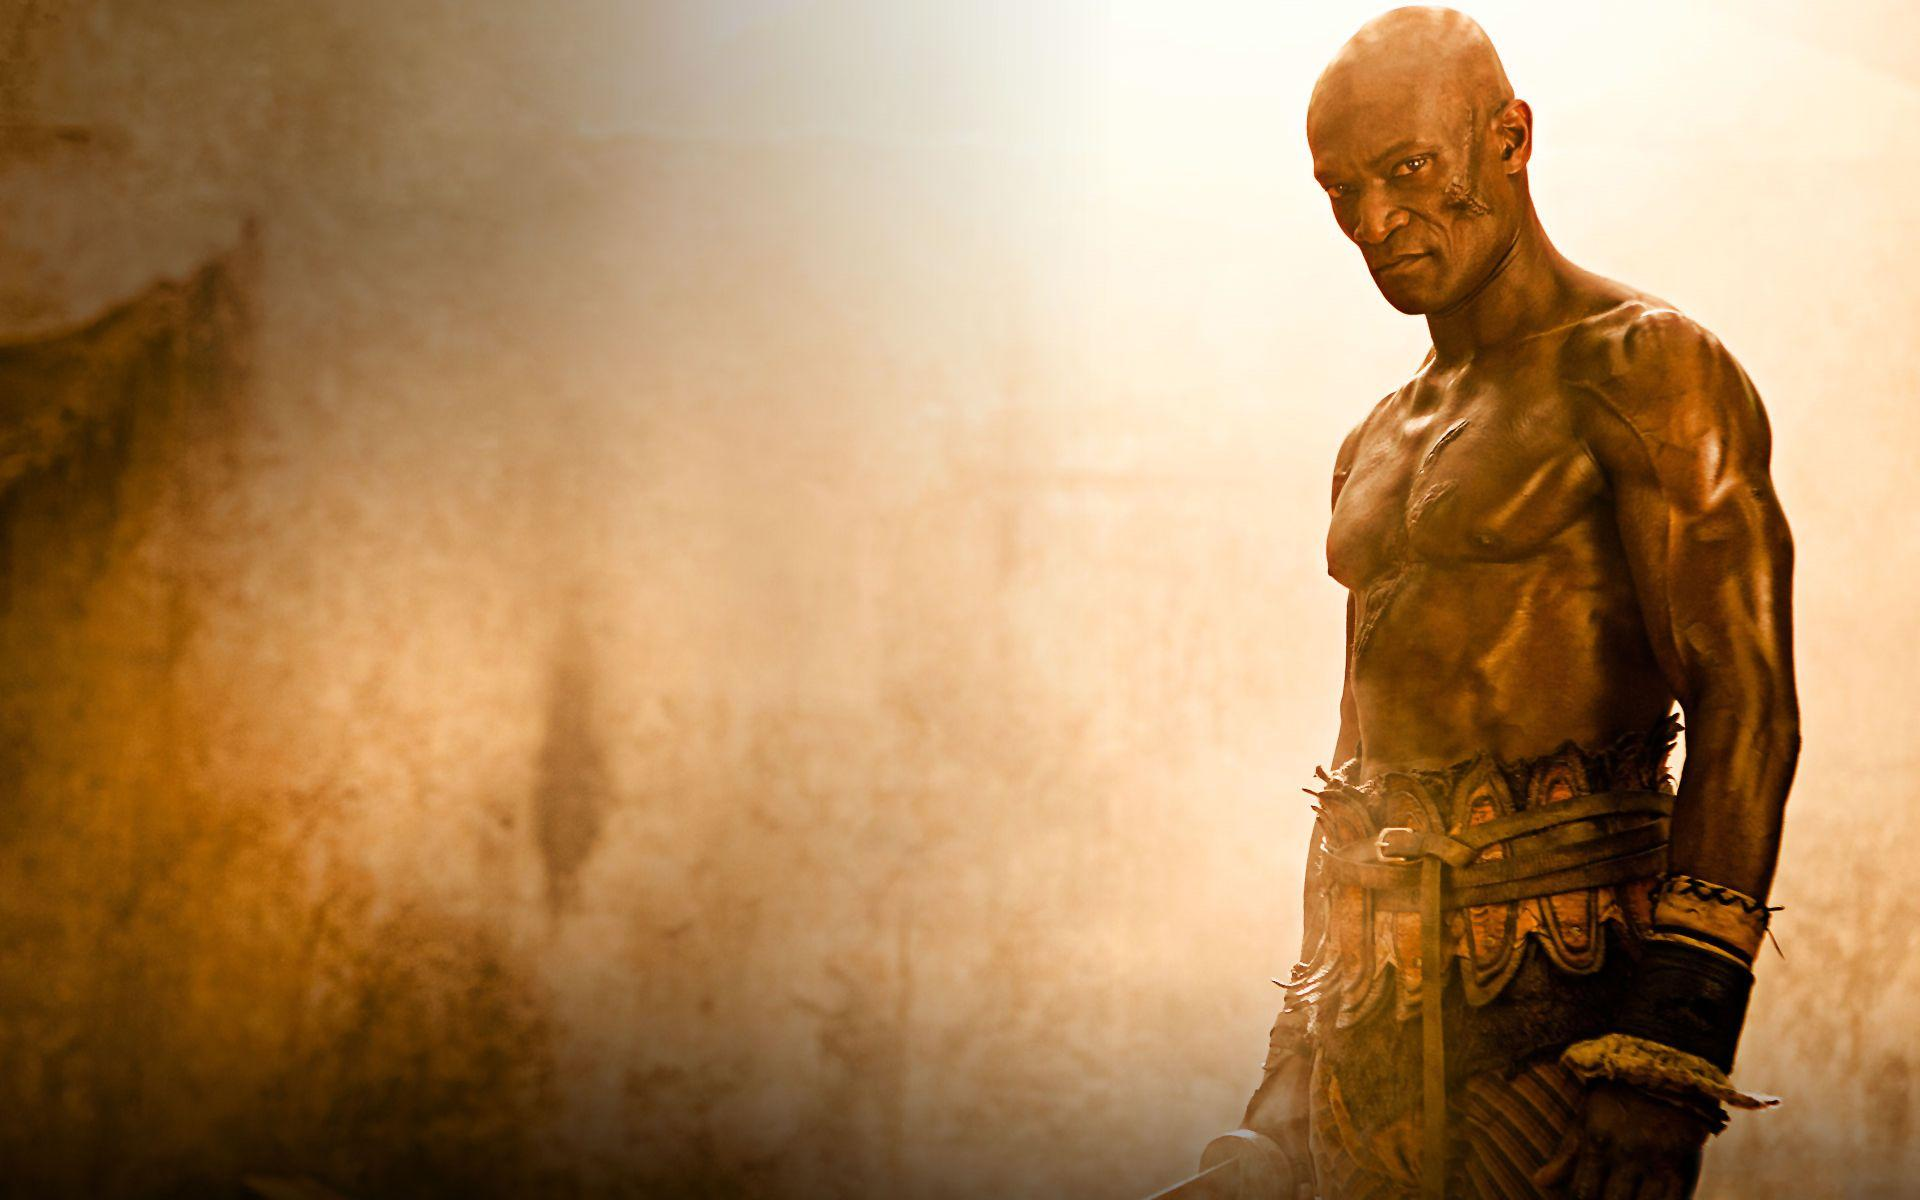 Spartacus gladiator Wallpapers | Pictures